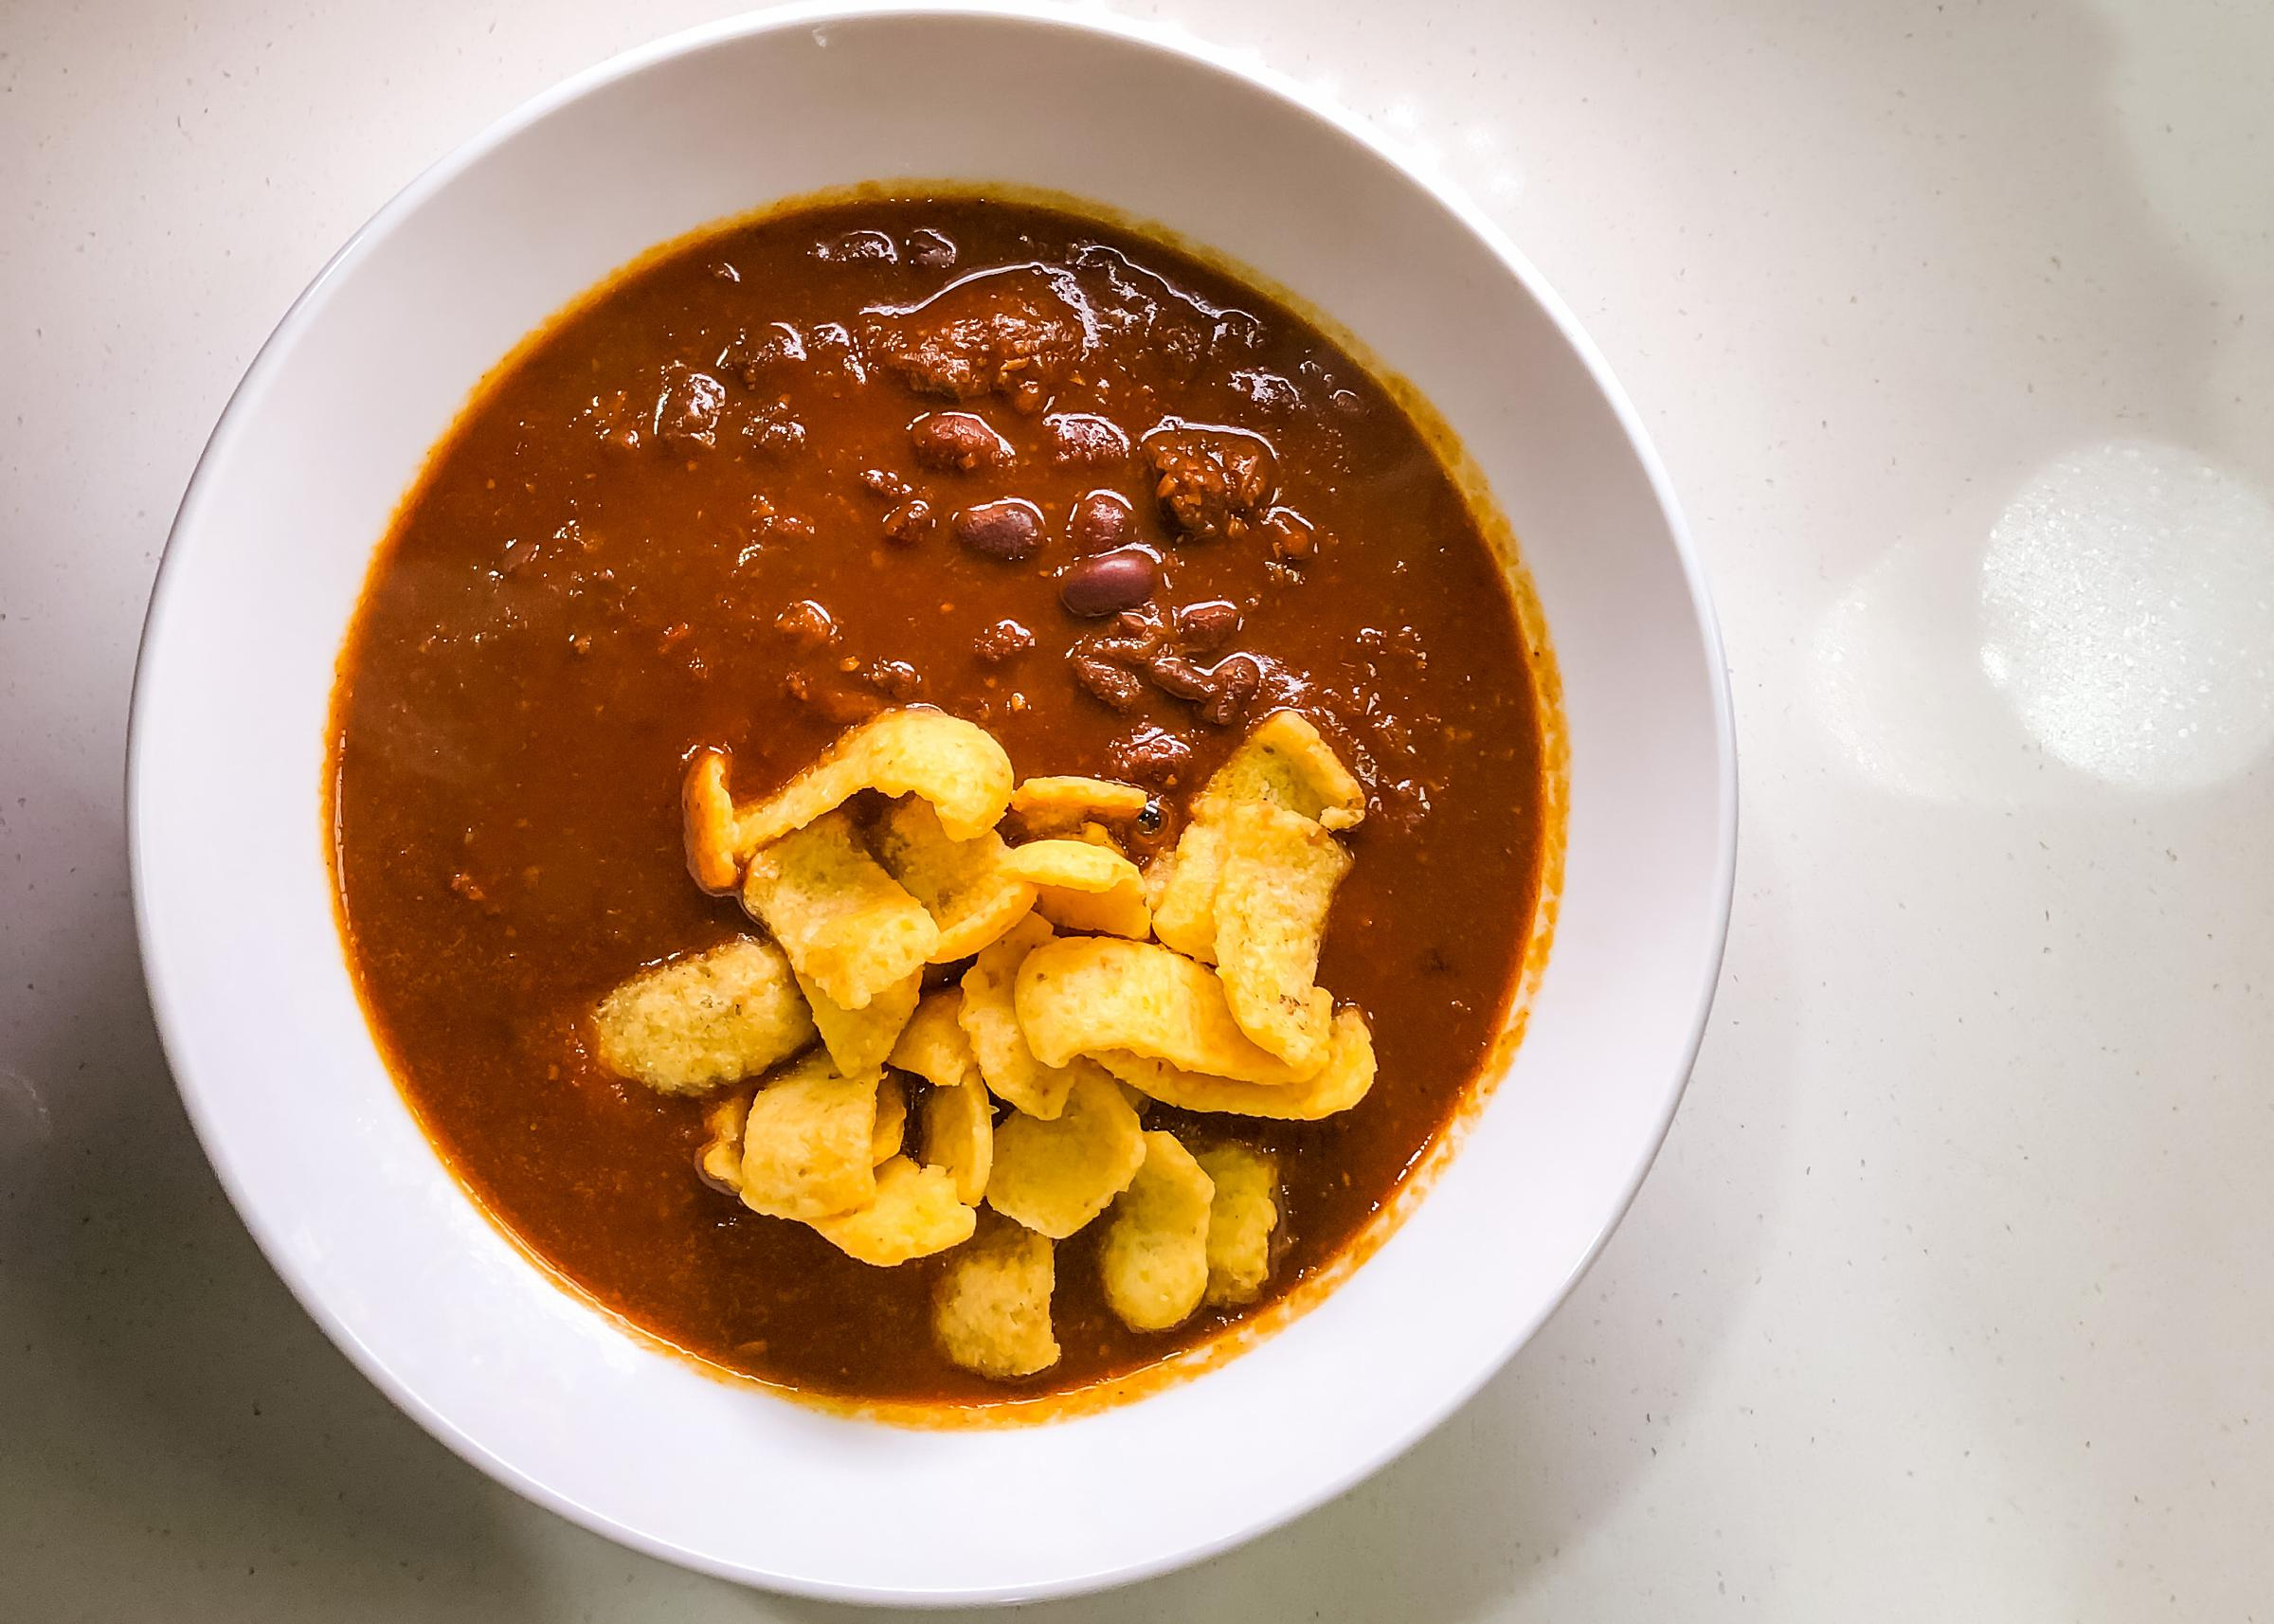 Eat with Tom Schmidt Chili recipe - Dried beans and whole chile peppers method in instant pot